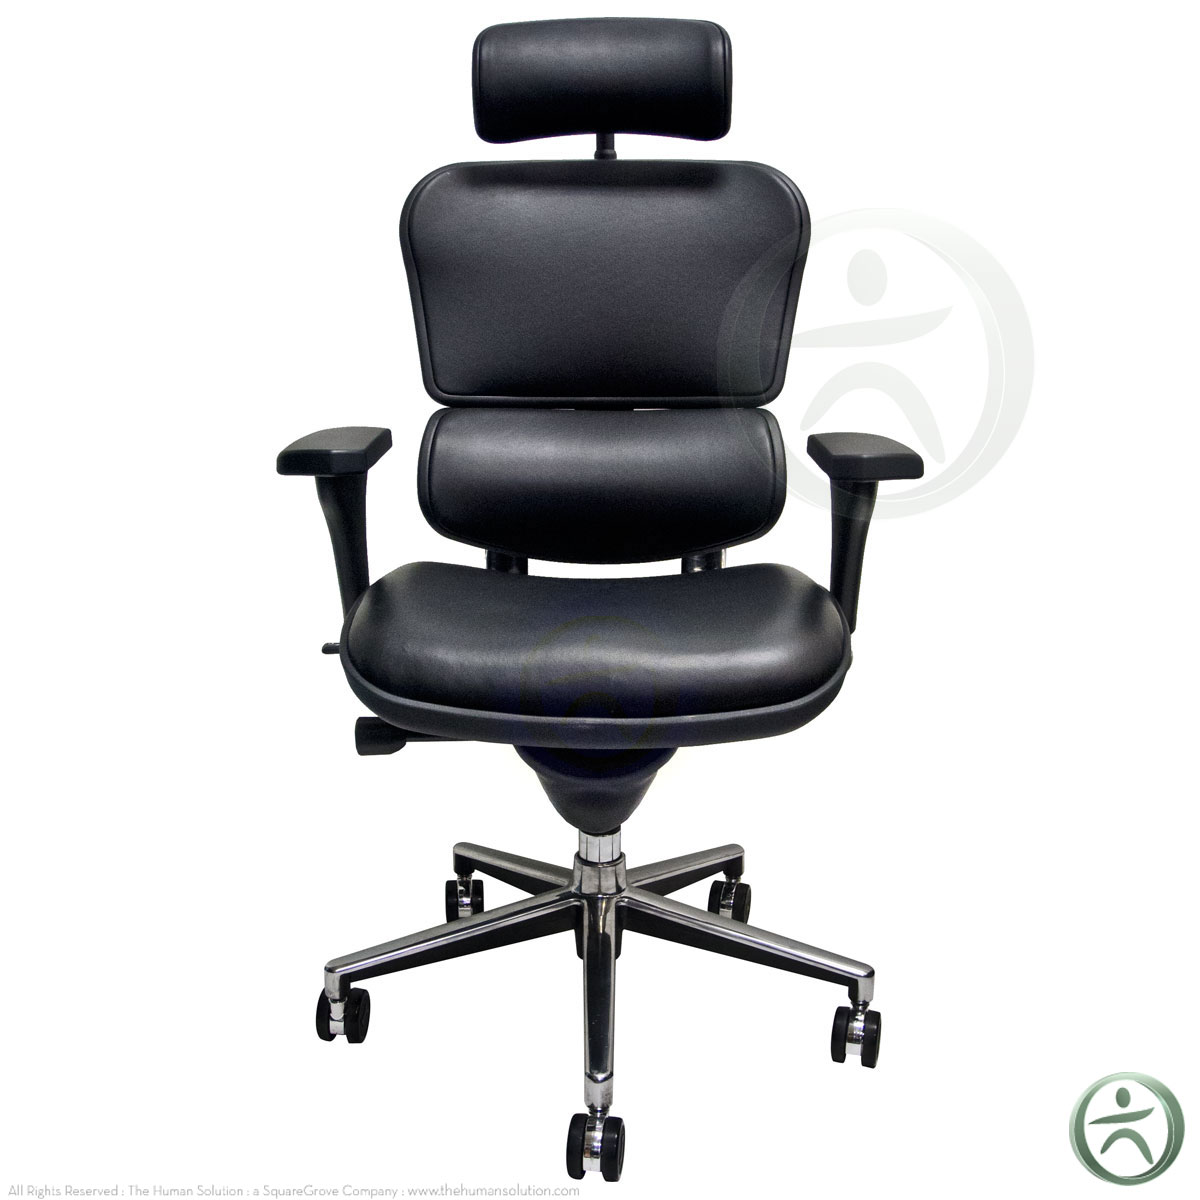 Raynor Chairs Shop Raynor Ergohuman Chairs Leather With Headrest Le9erg